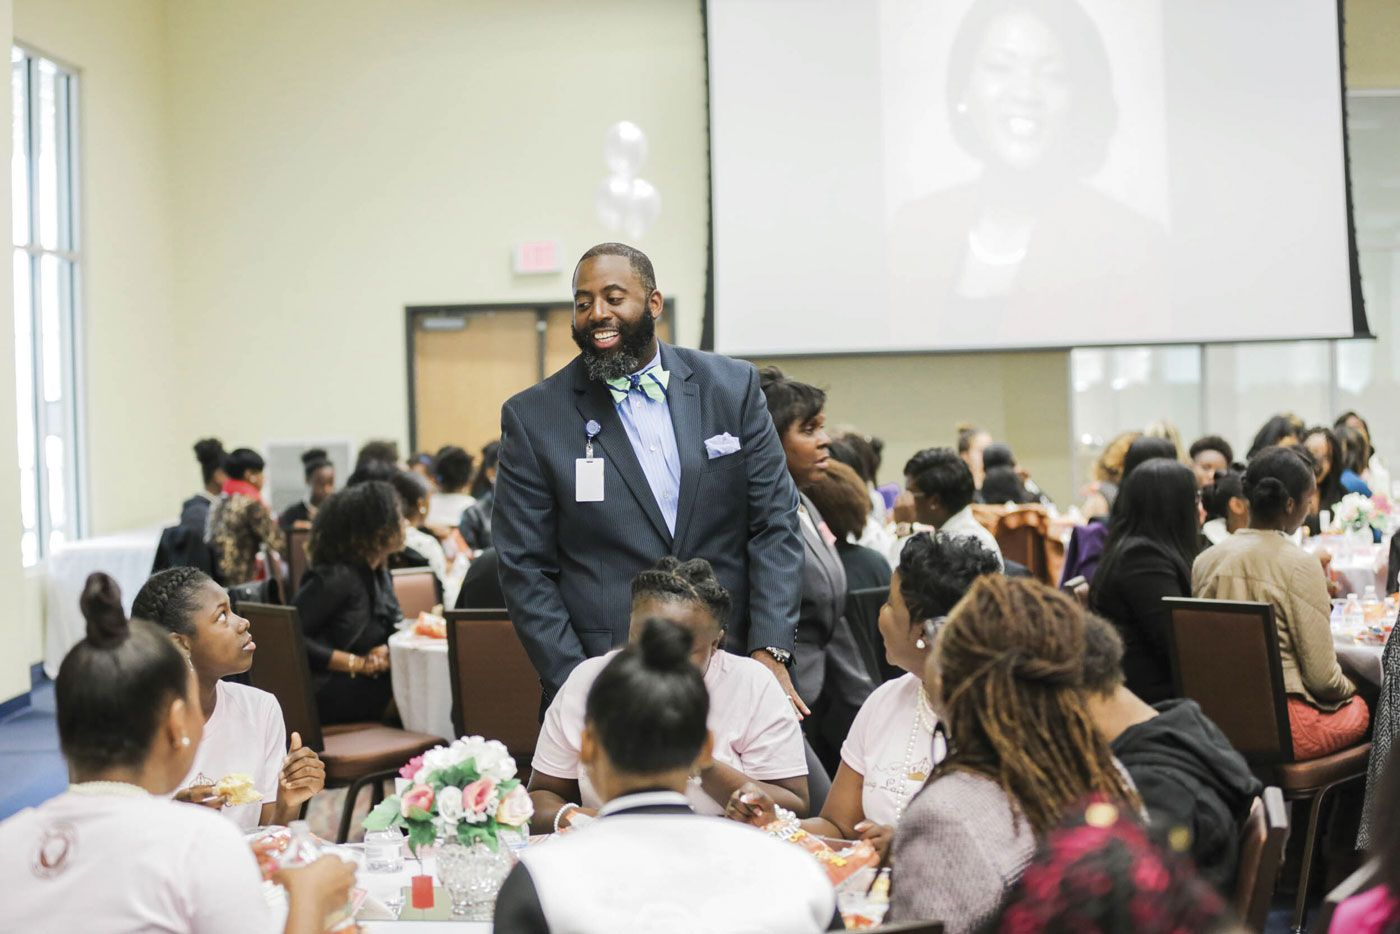 Dr. Barron Davis greets a table of young people during a luncheon.